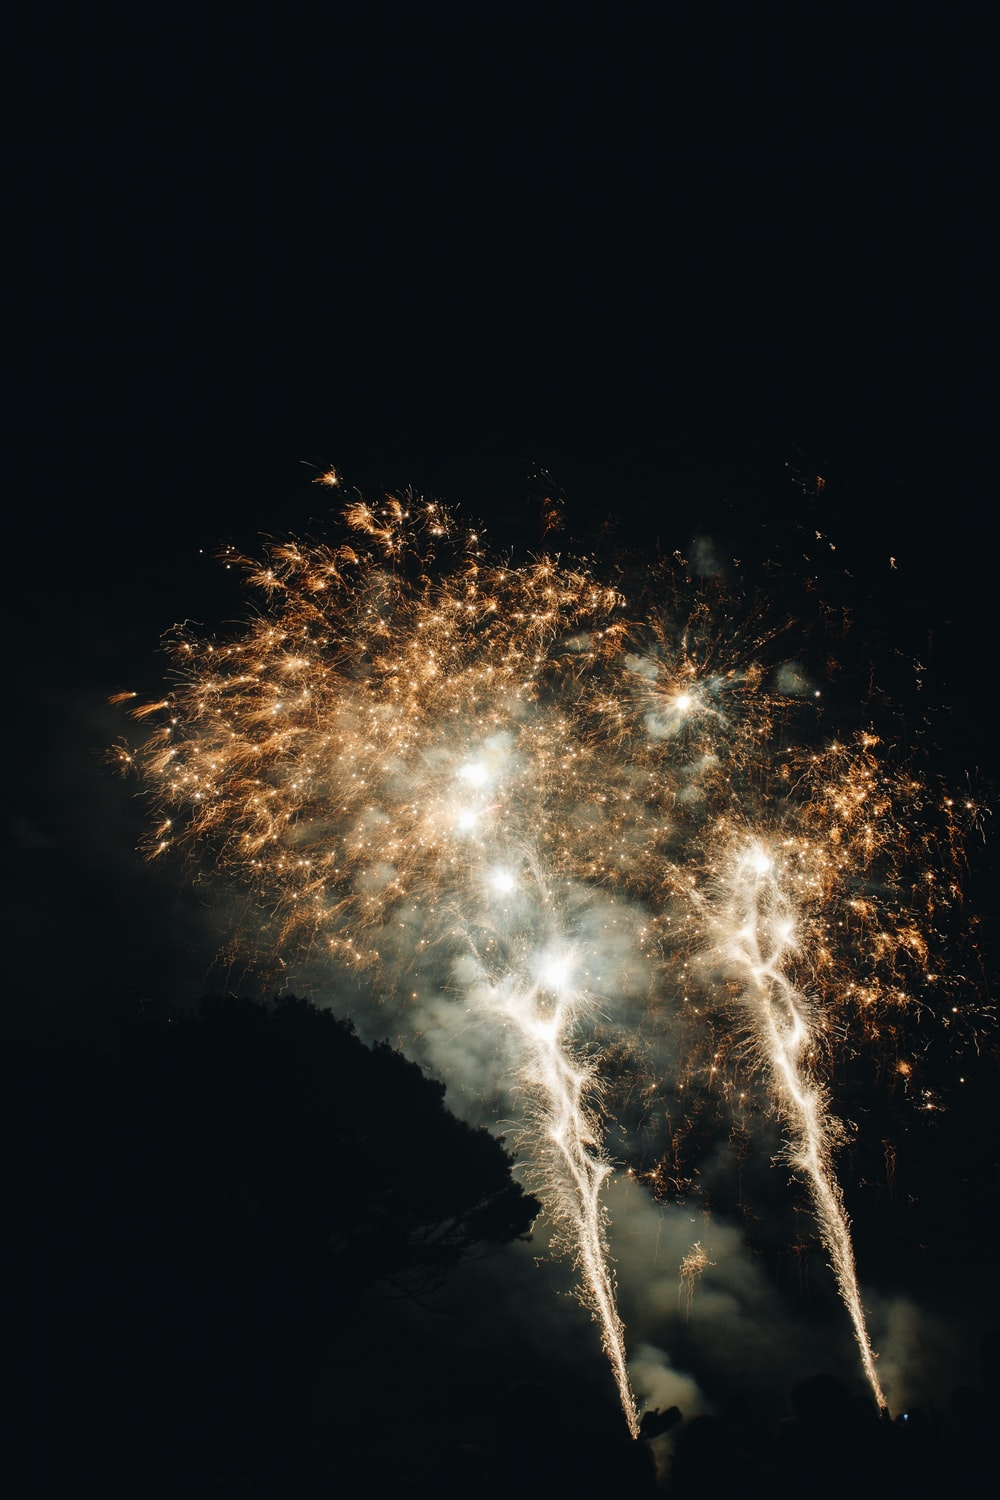 white fireworks in the sky during night time